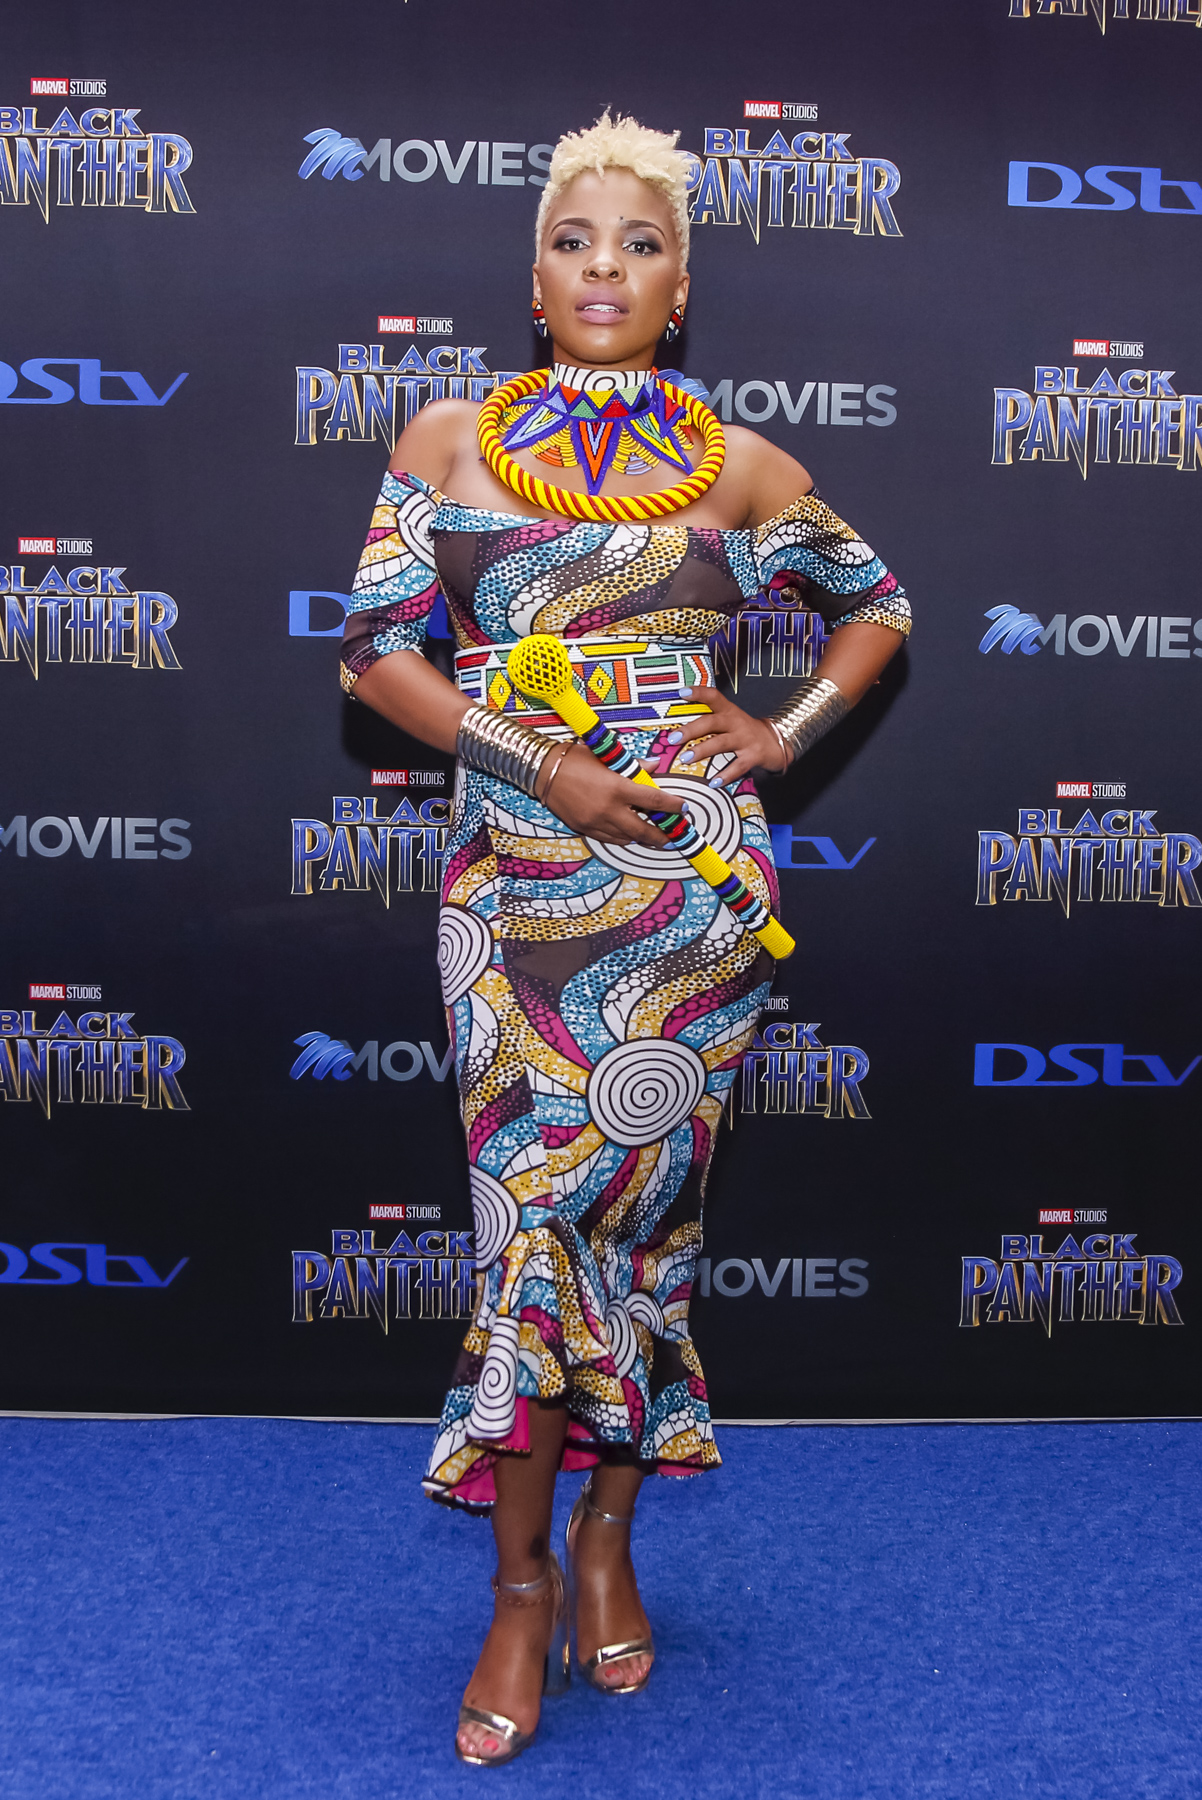 5 Best Emmy Beauty Looks You Will Want To Try In Real Life: Top 5 Best Dressed Female Celebs At The Black Panther SA